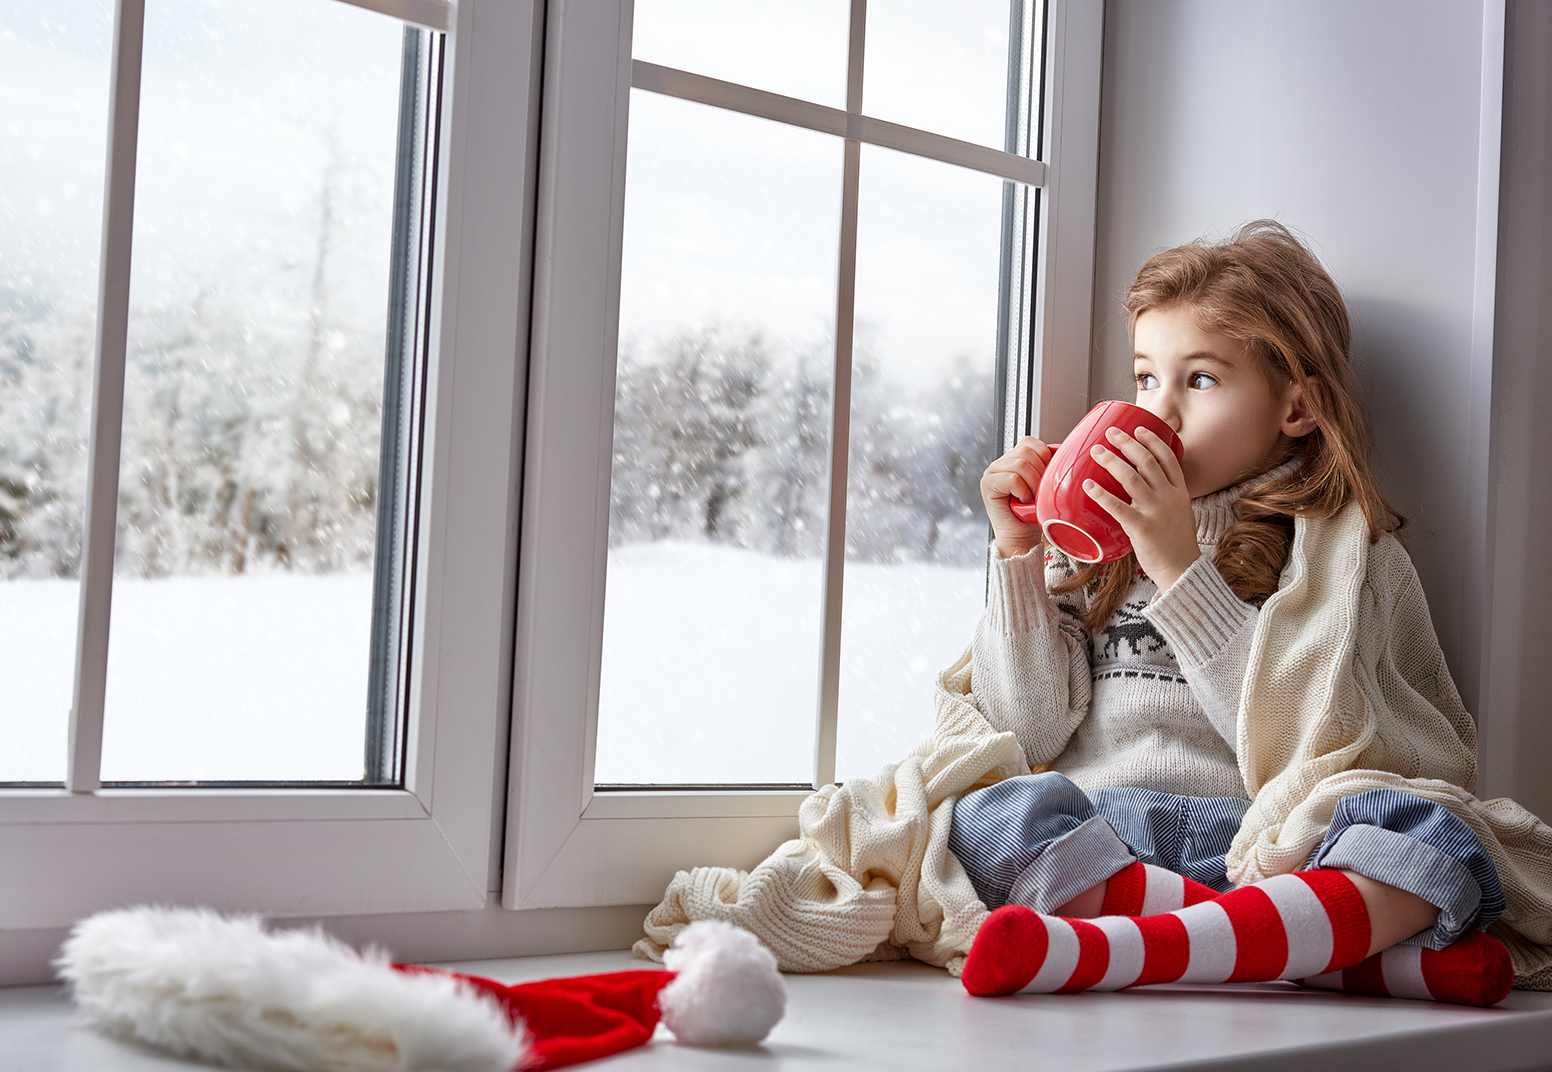 New Windows Can Keep Your Home Warmer